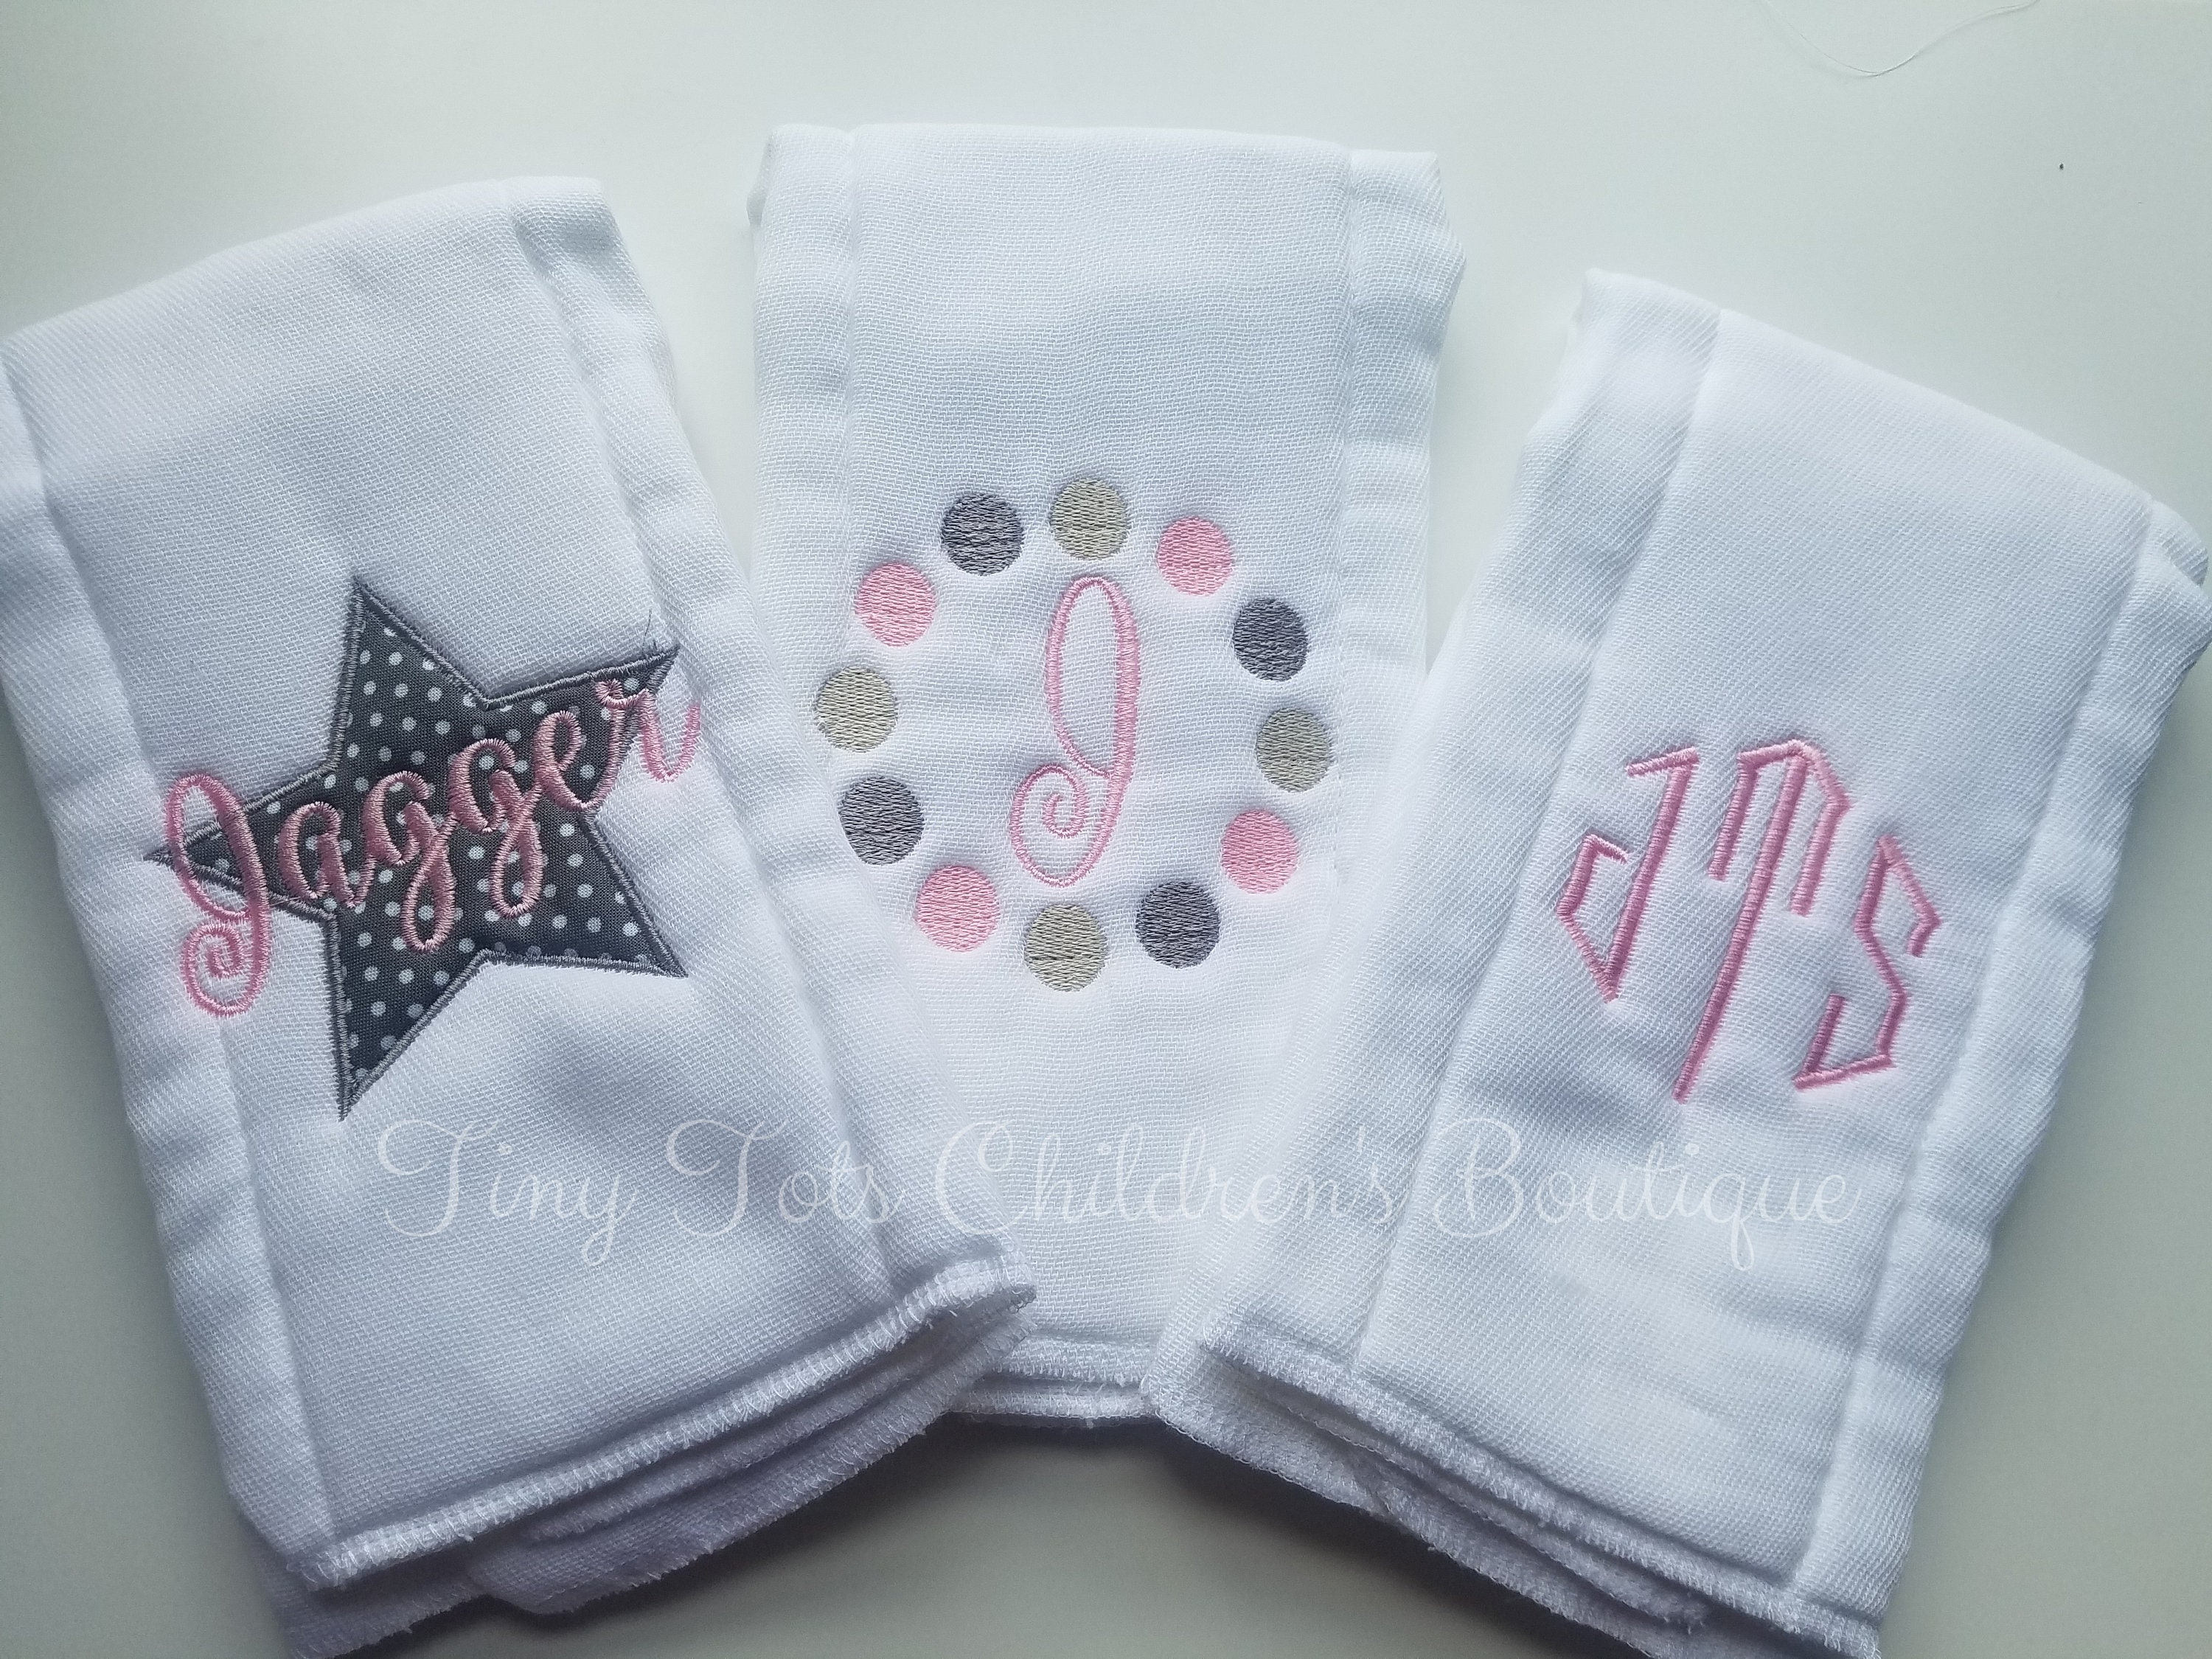 Personalized baby embroidered burp cloths set of 6 girl